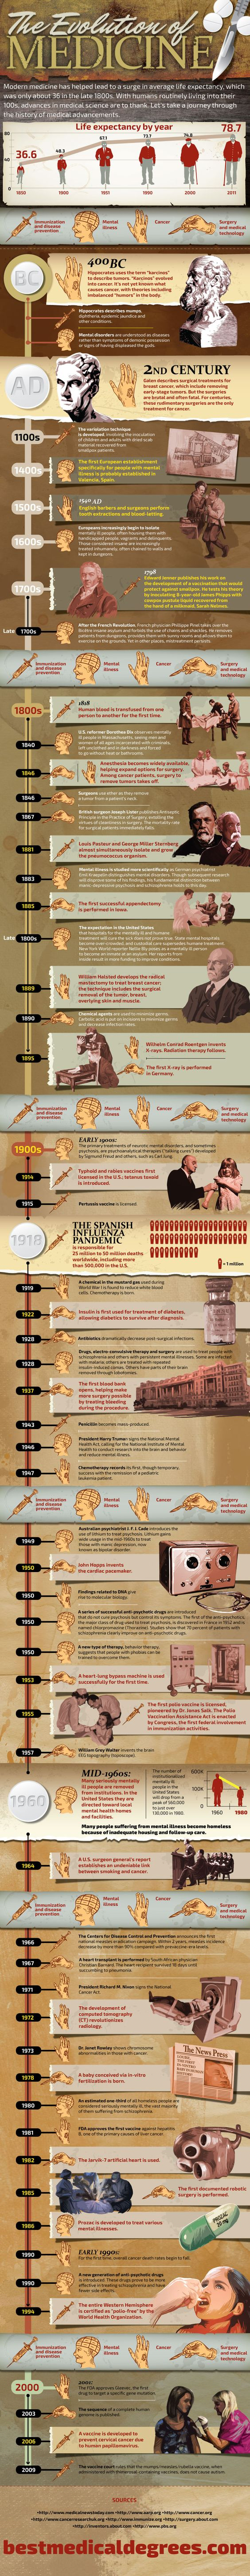 The Evolution of Medicine | A Health Education Infographic | BerryRipe.com: